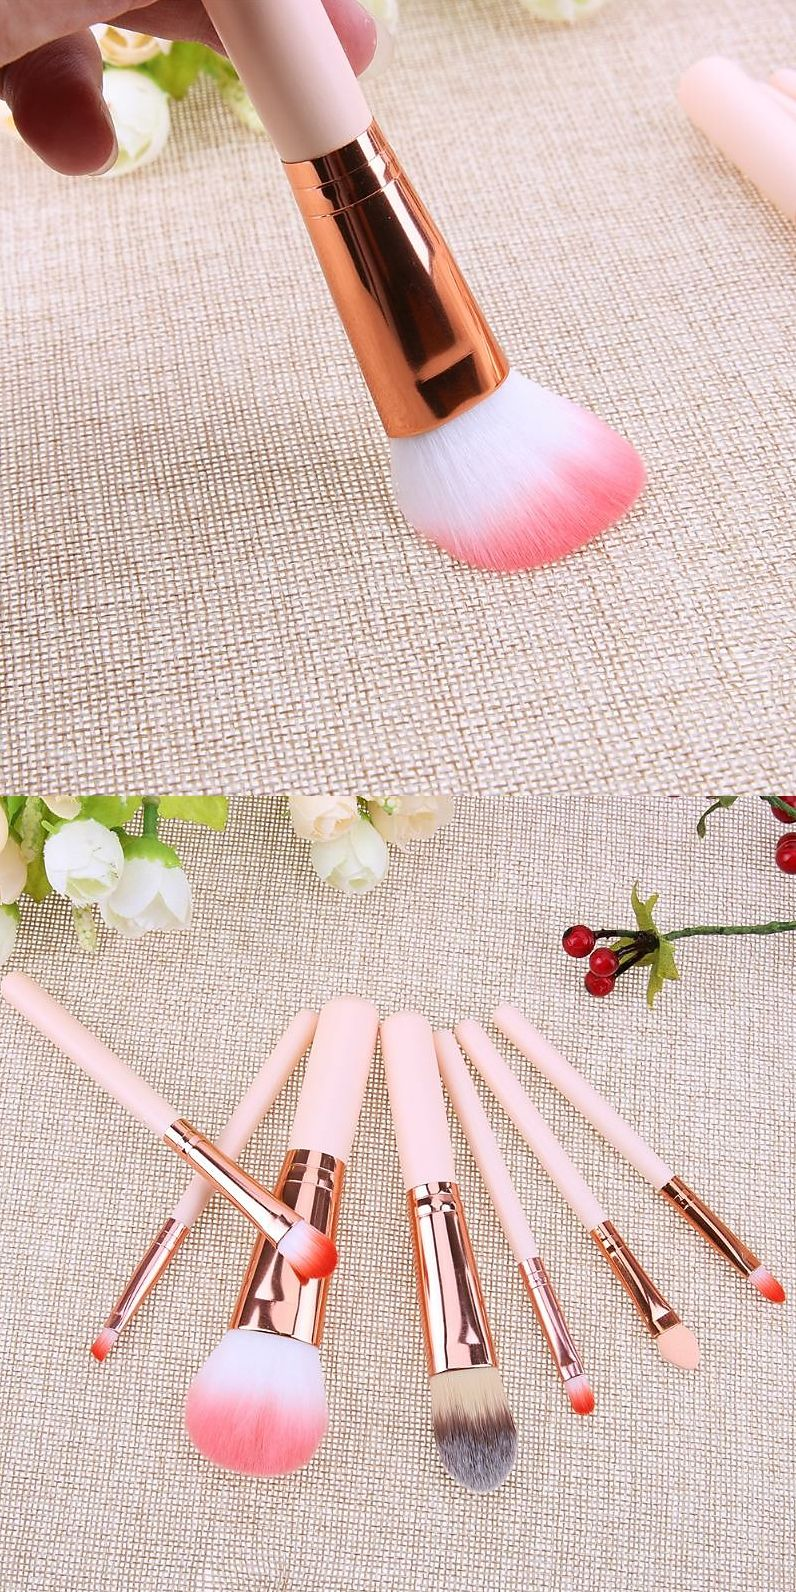 Mini makeup brush set pink cosmetics kit. Looking for